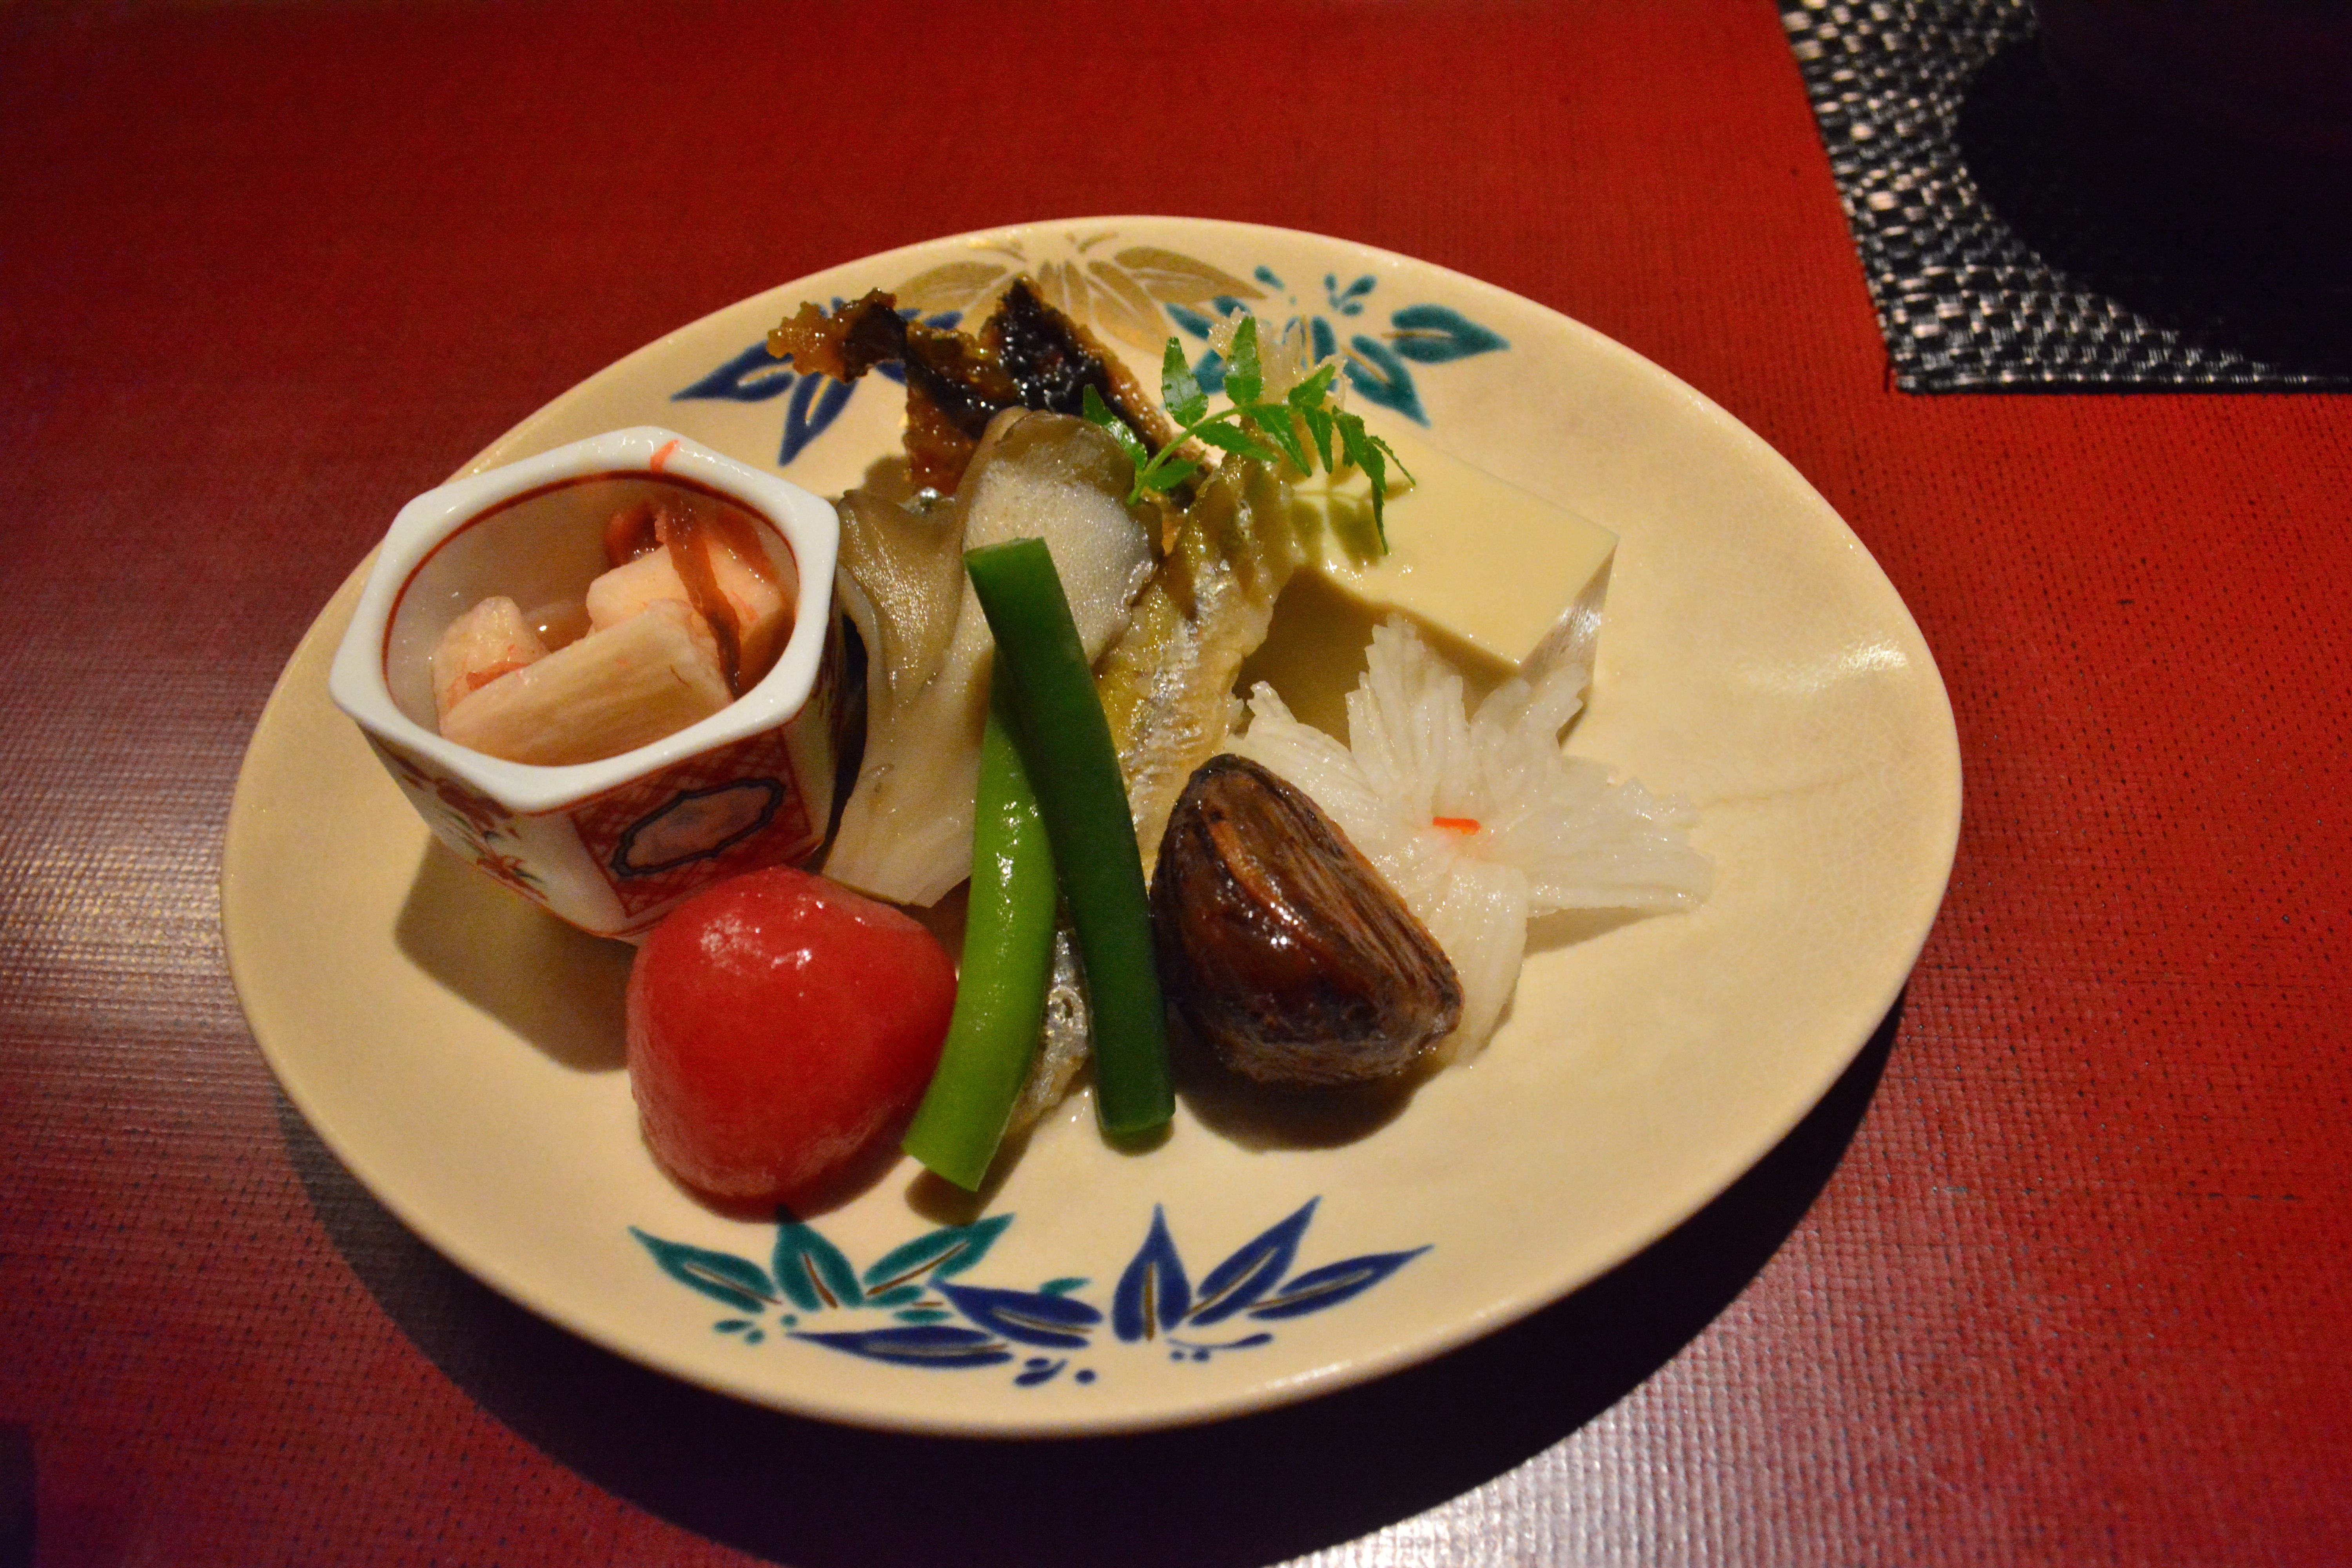 Taro served both pickled and in plum sauce, with autumn vegetables | J.J. O'DONOGHUE